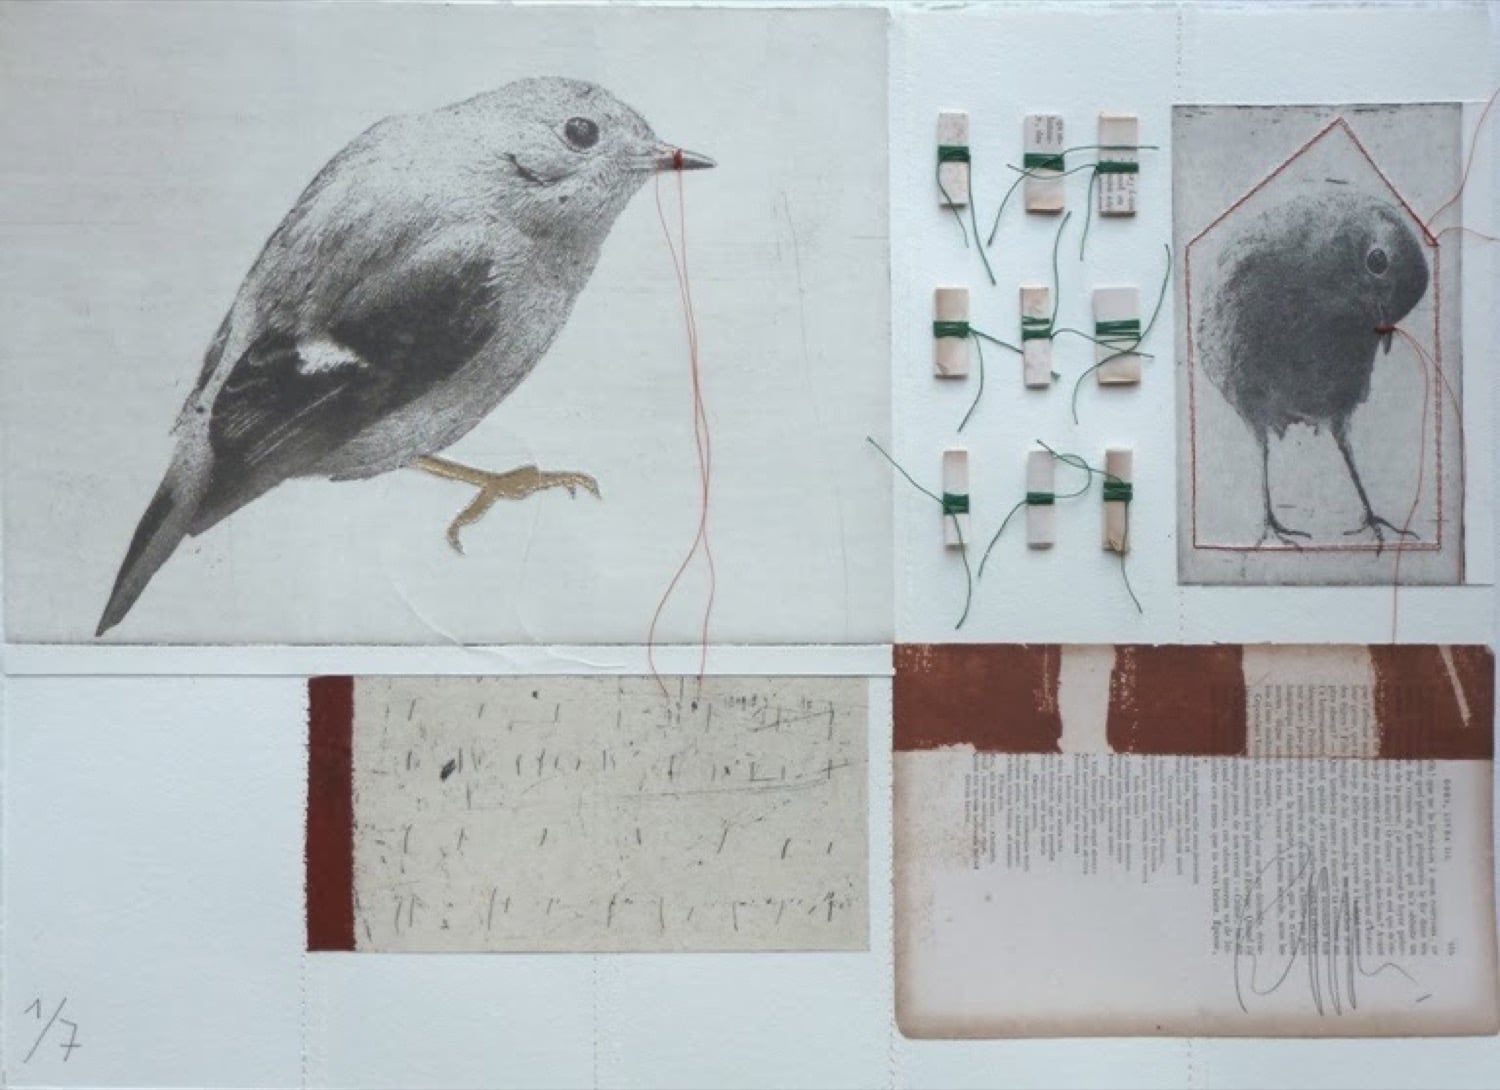 Mixed Media artwork by Ronald ceuppens with bird etching